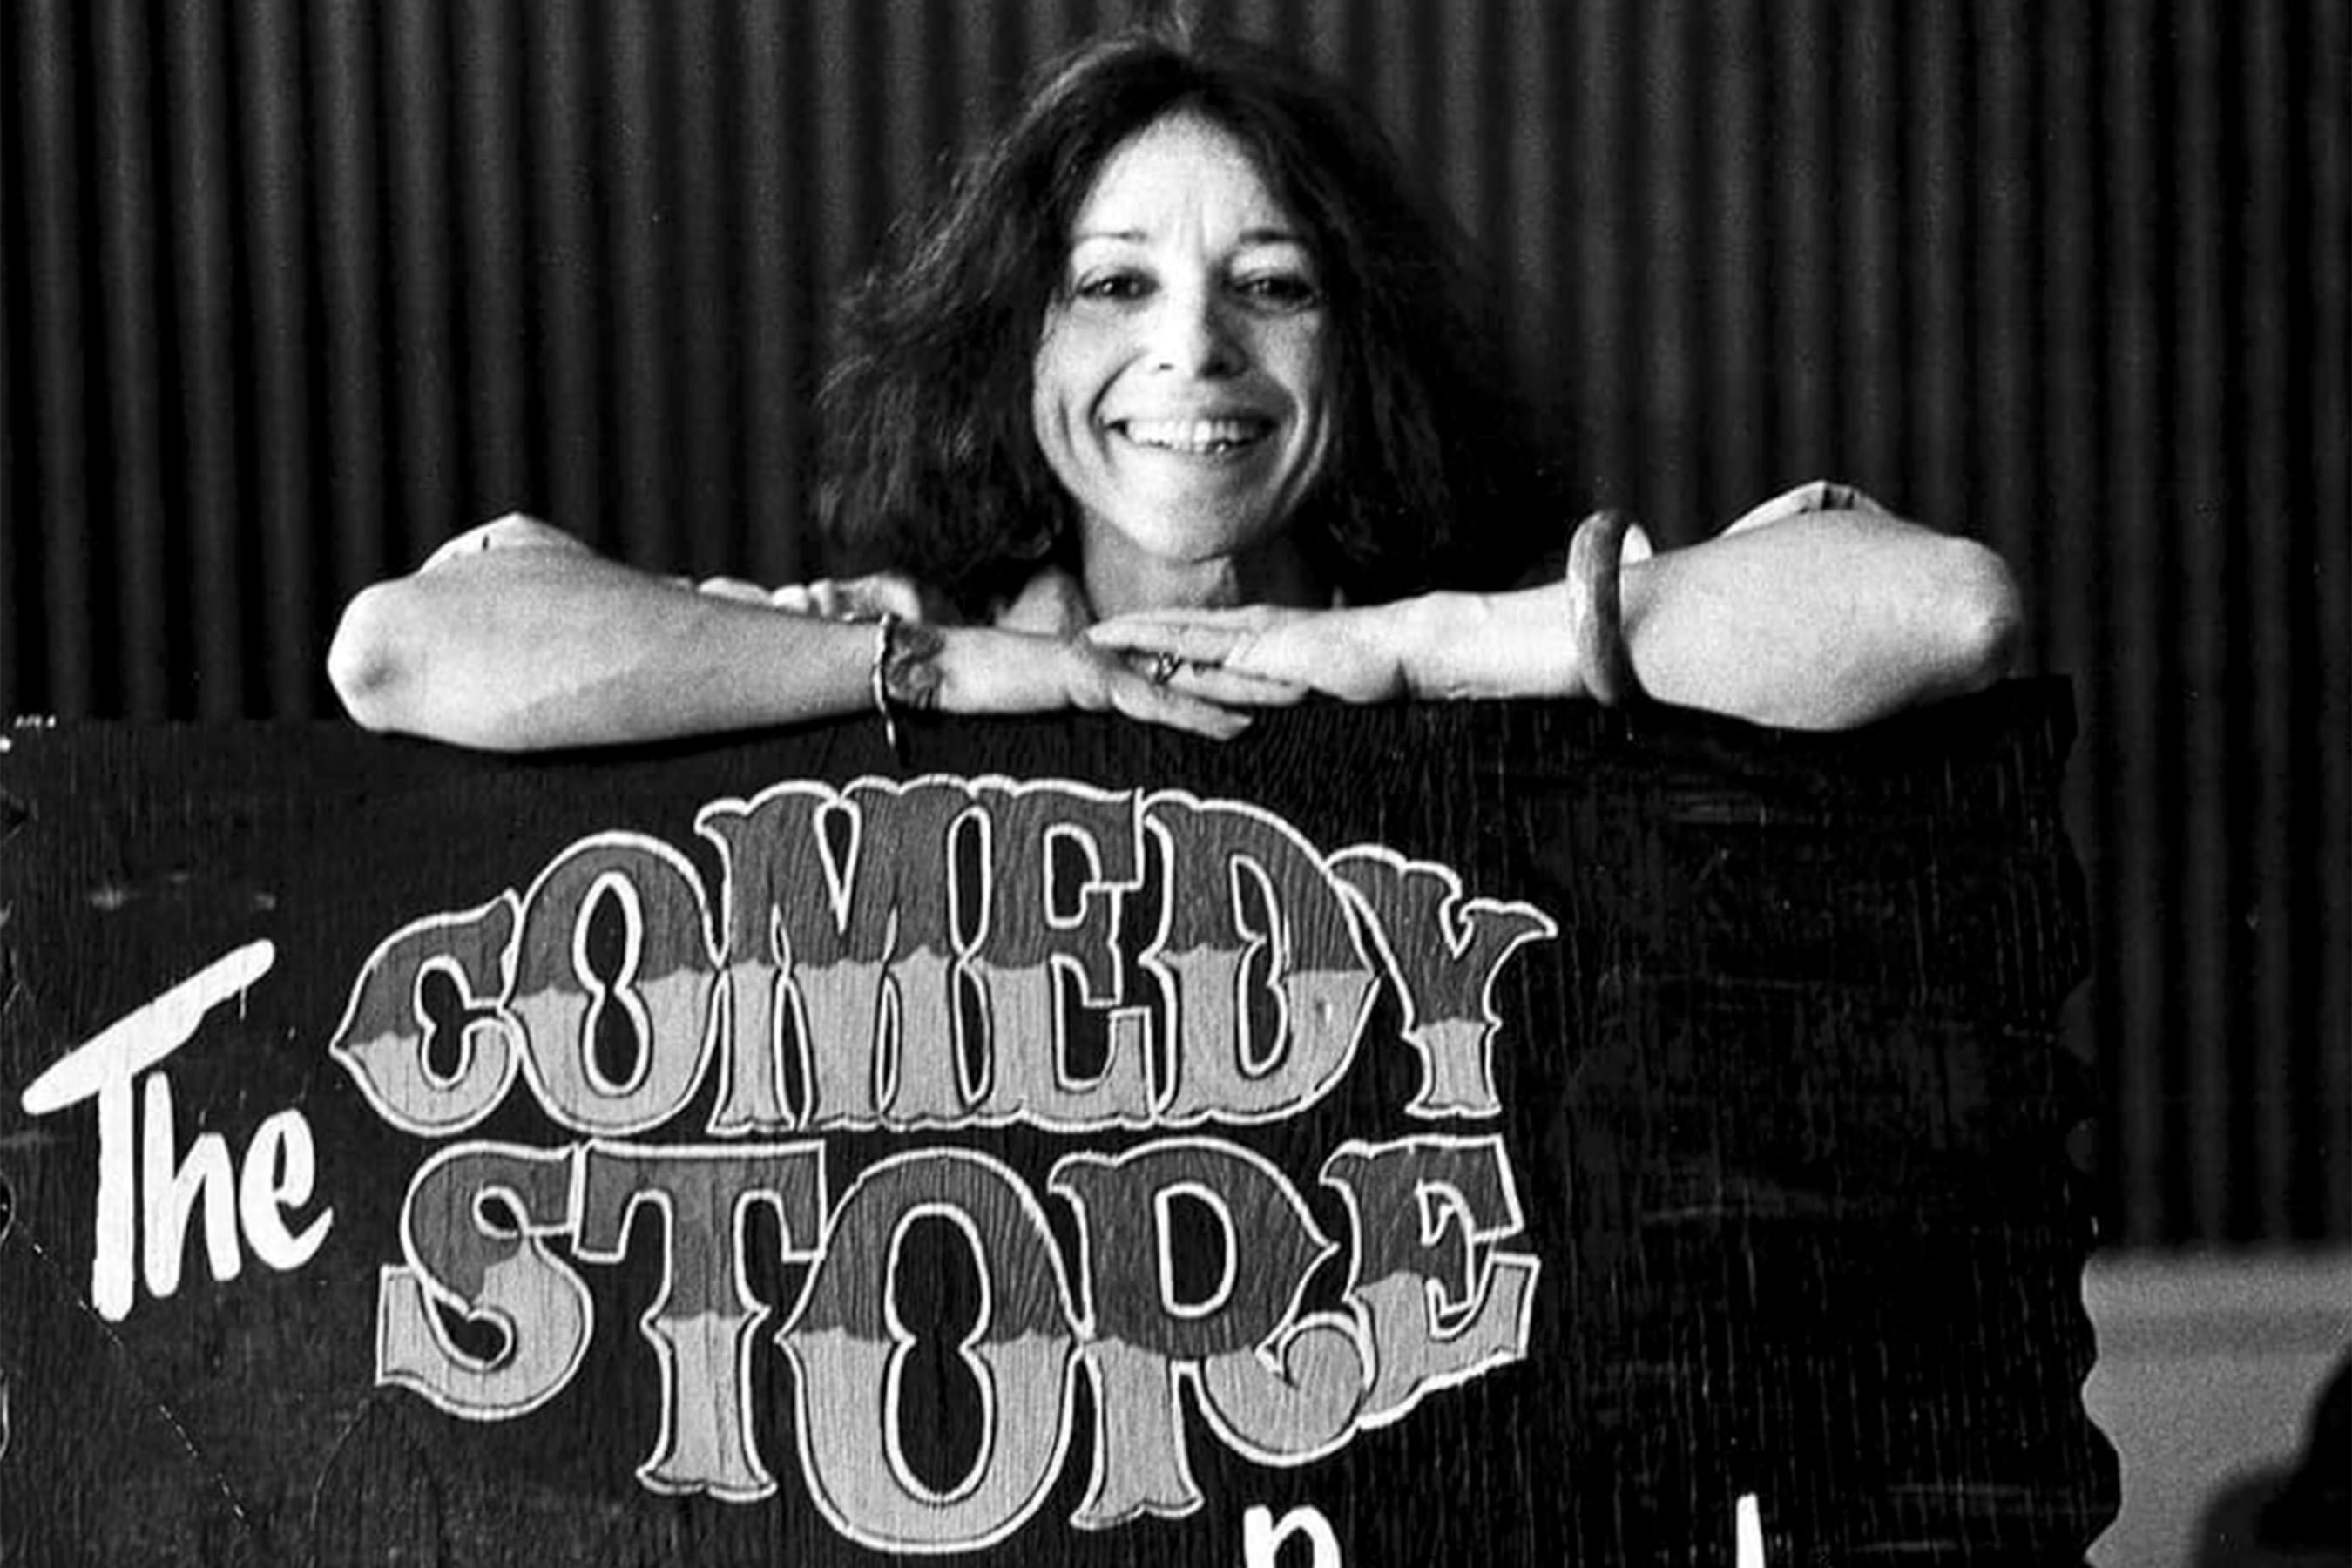 Comedians mourn death of Mitzi Shore, influential Comedy Store owner